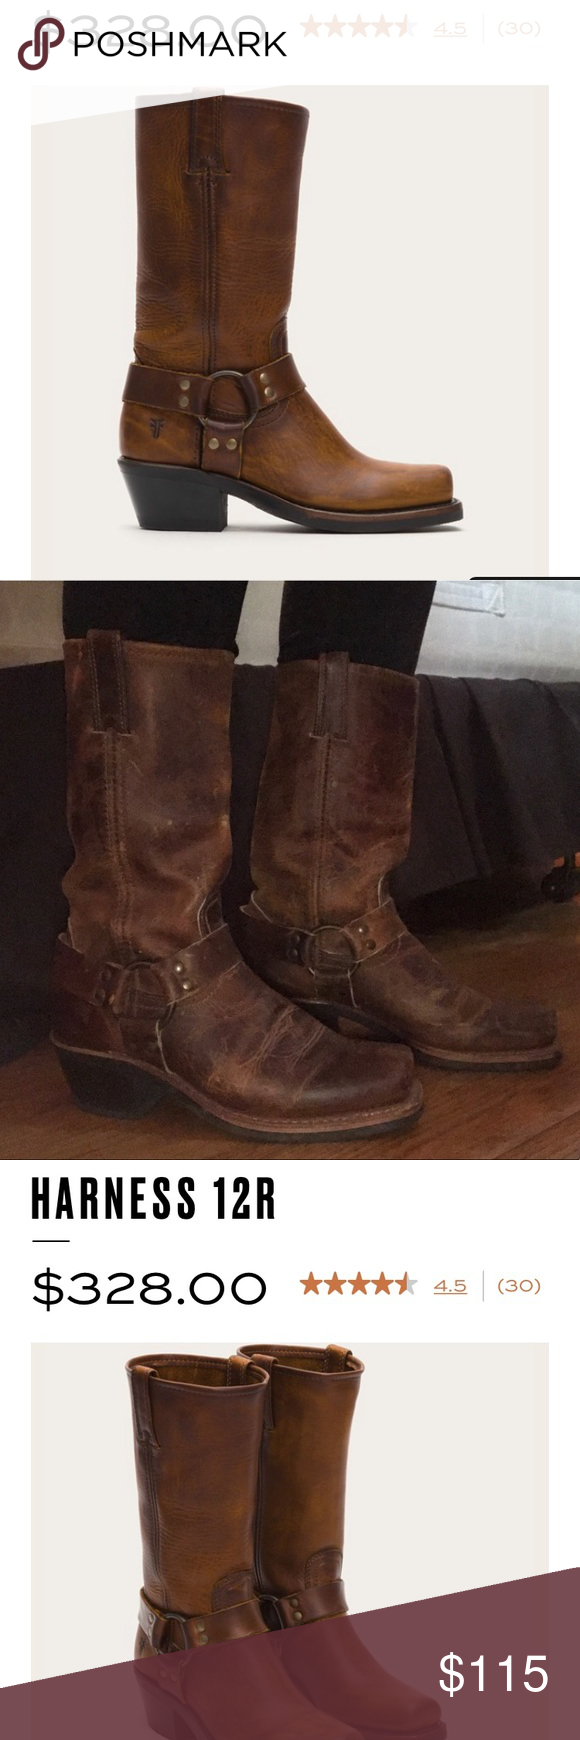 Authentic Frye Harness 12R riding boots Worn twice!!! Heavy duty riding  boots.